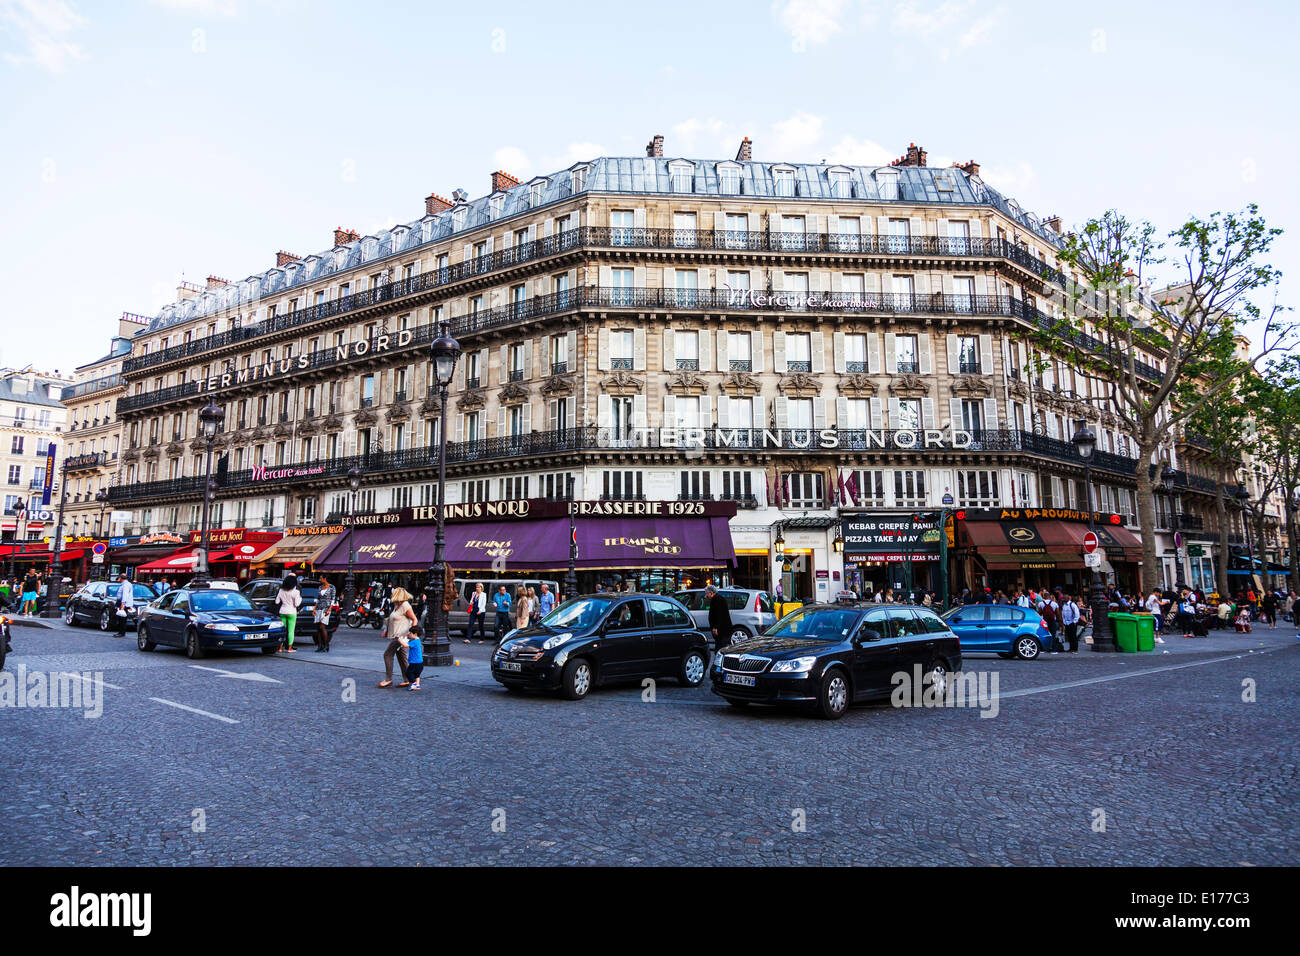 the hotel terminus nord in paris opposite the gare du nord station stock photo royalty free. Black Bedroom Furniture Sets. Home Design Ideas